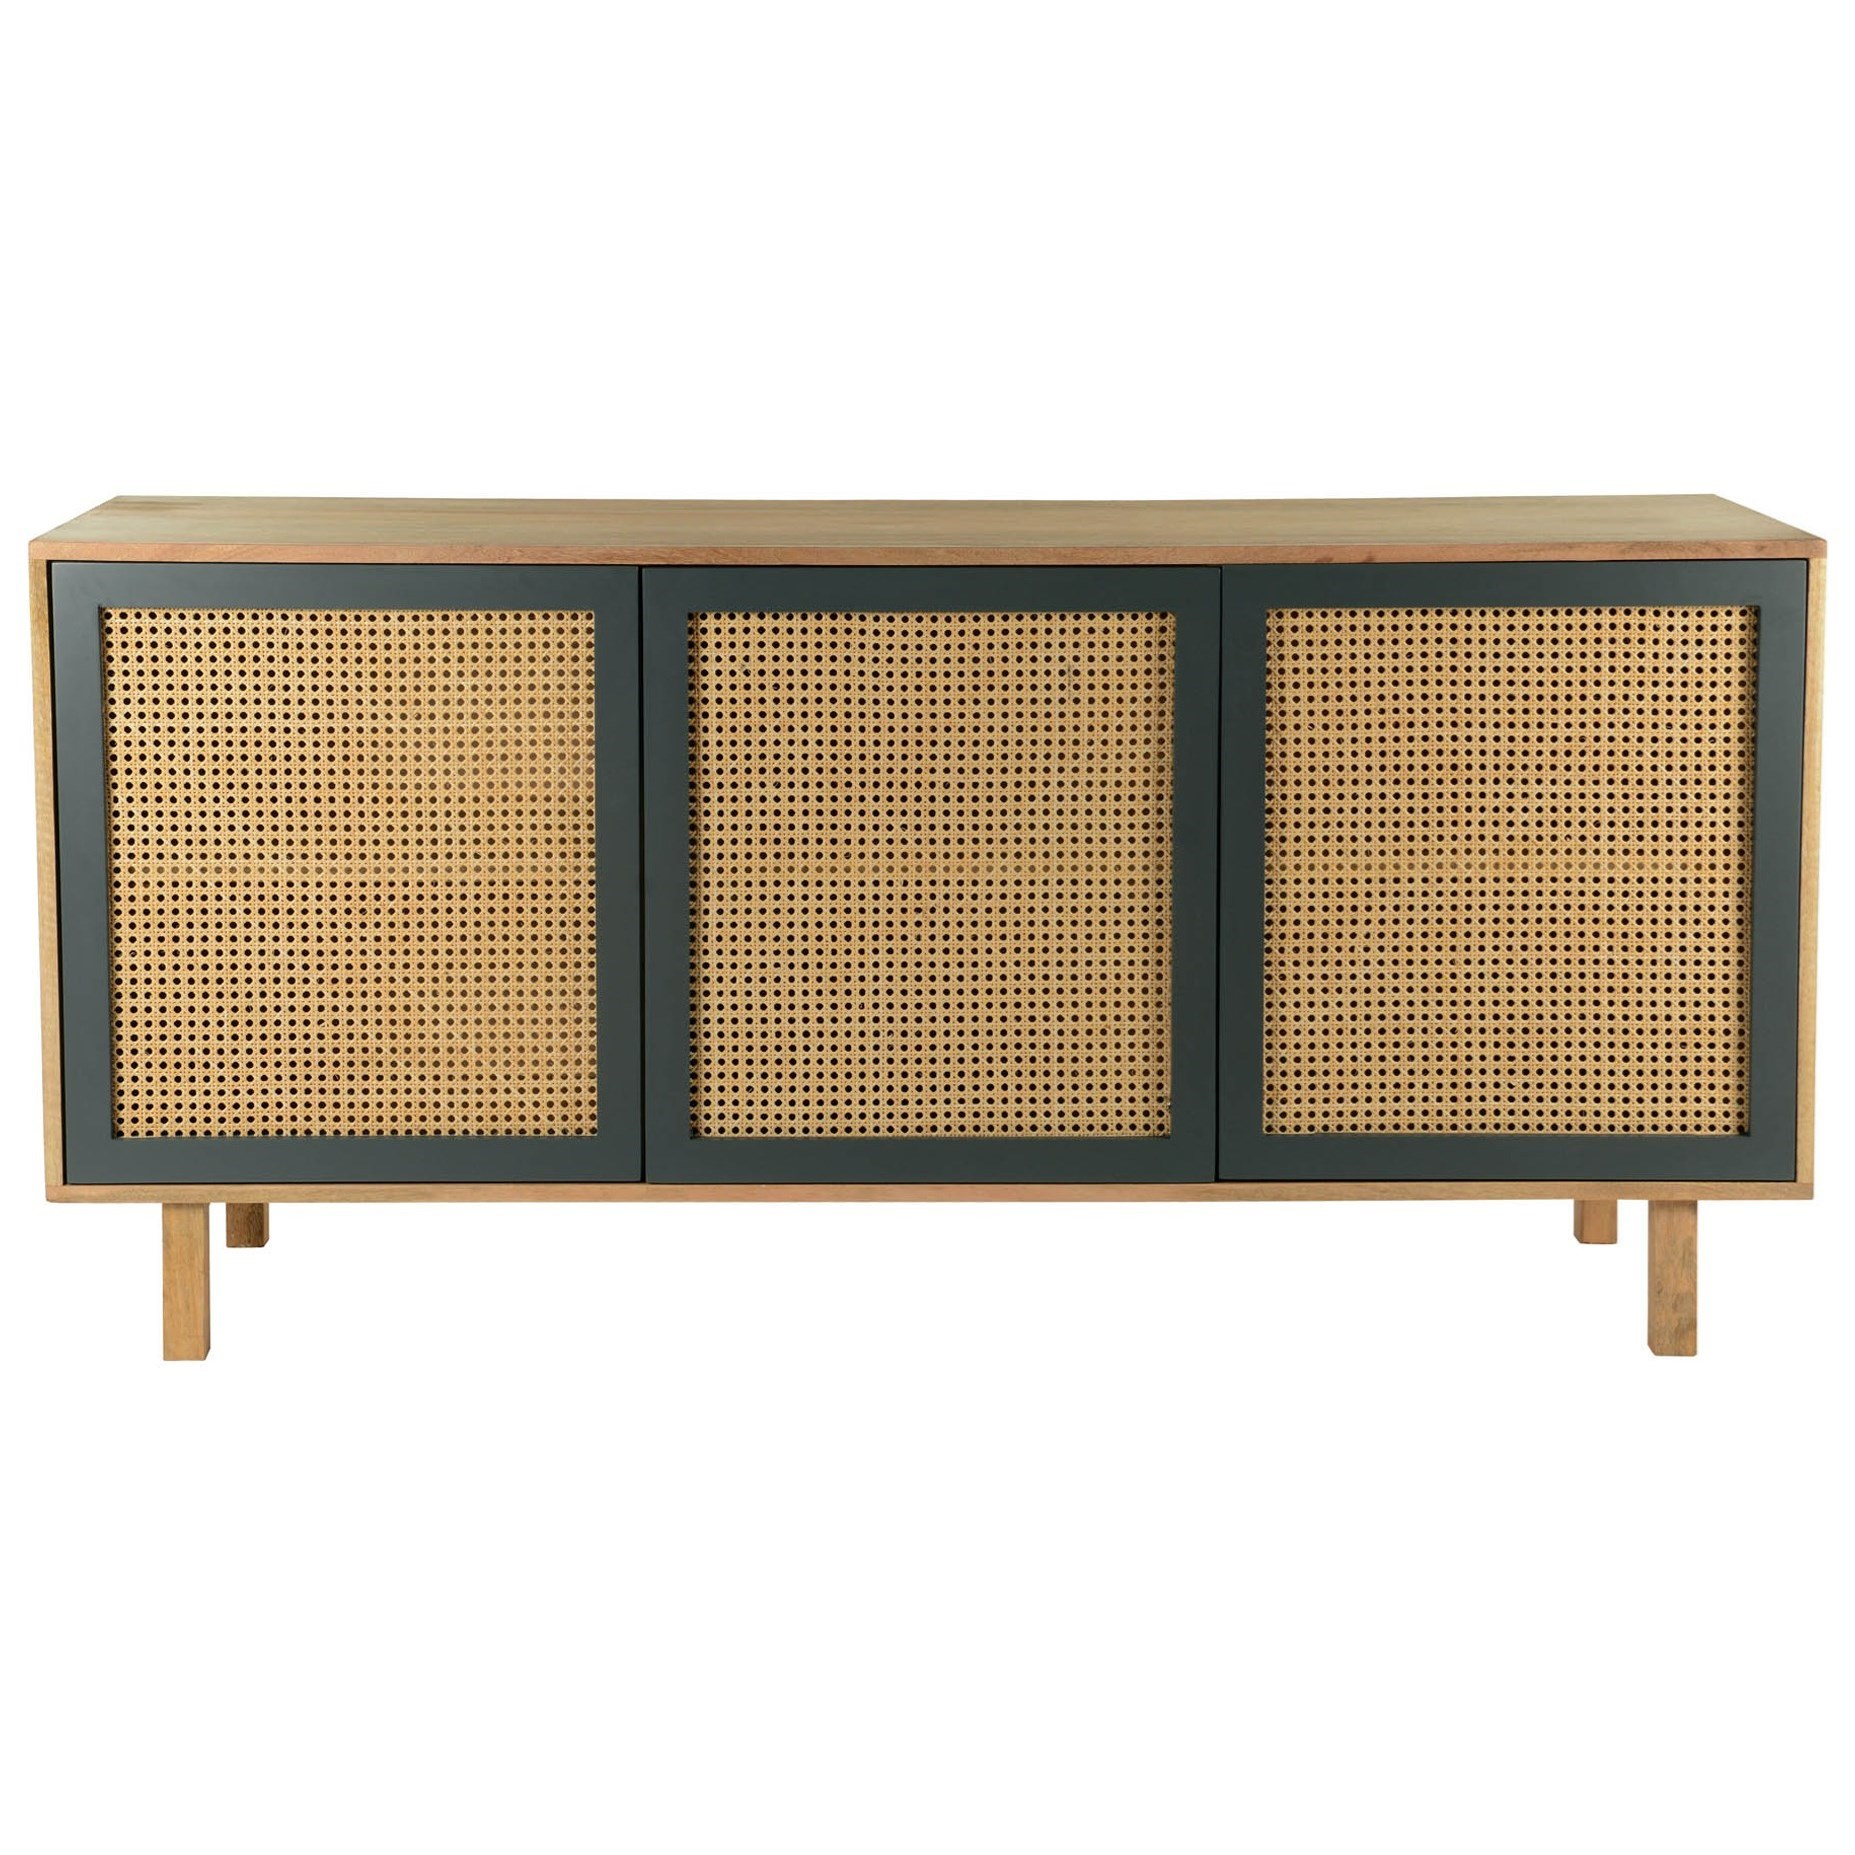 Moe's Home Collection Ashton Woven Cane Sideboard With 3 Inside Solid Wood Contemporary Sideboards Buffets (View 14 of 30)